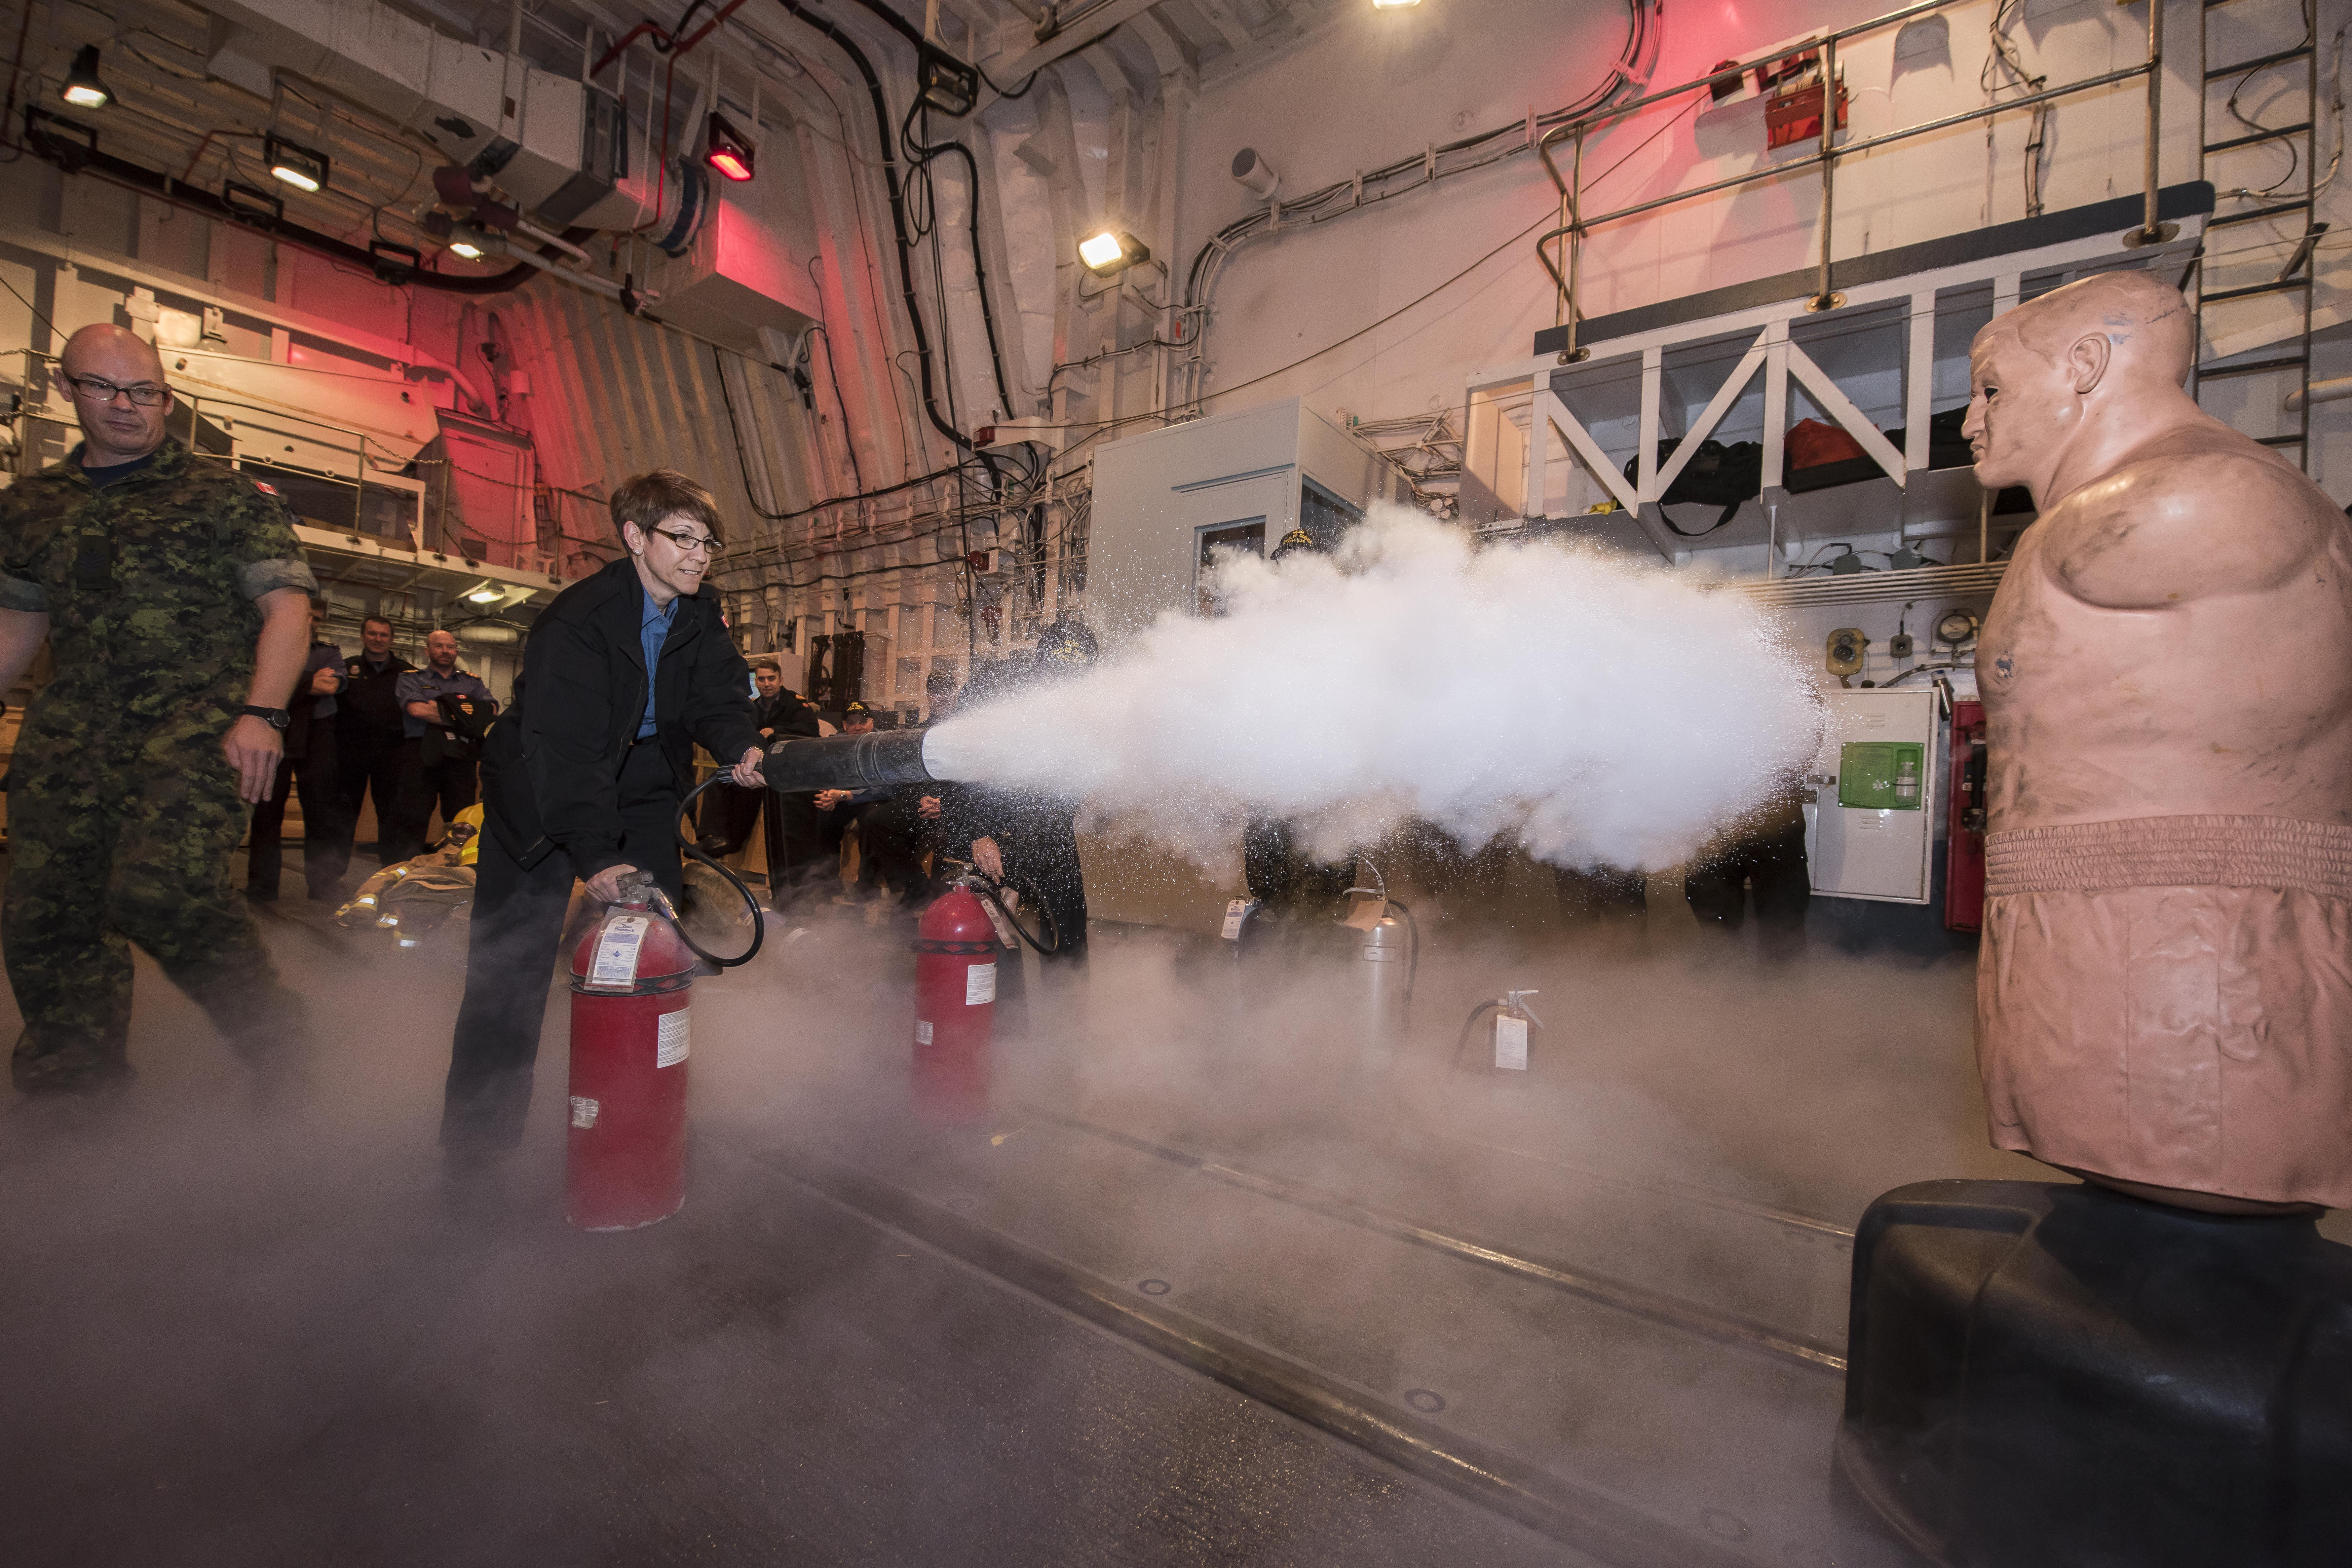 Member of Parliament Kelly Block gives a fire extinguisher a try during a damage control presentation in the hangar, before heading out to the flight deck in full fire gear to receive fire hose training.